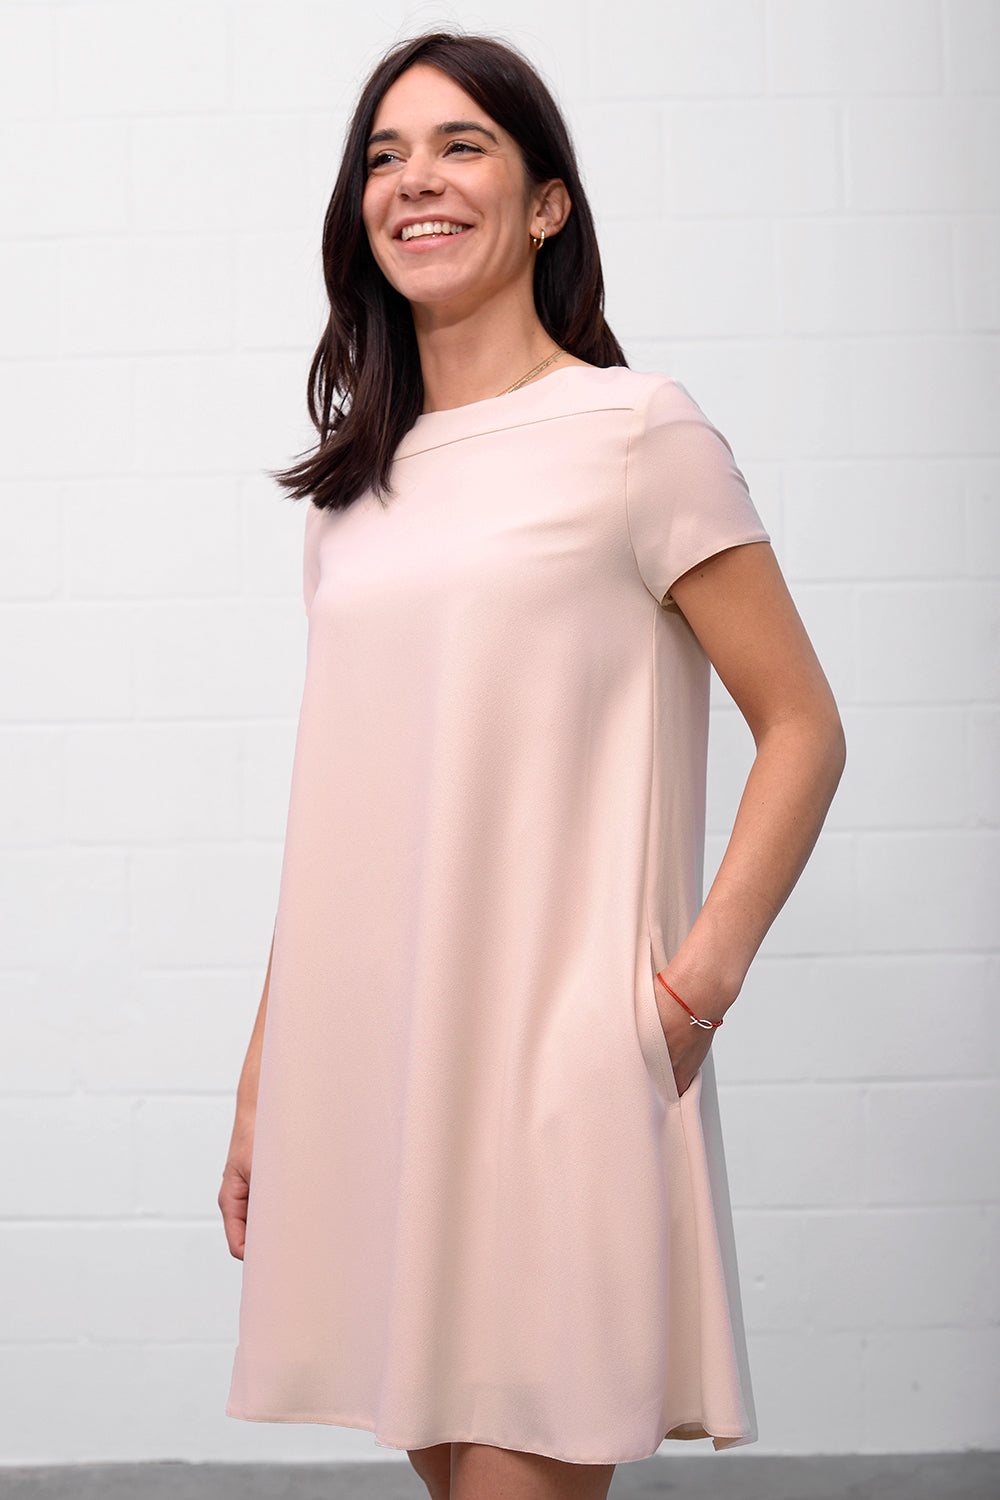 Apesia Dress - nude